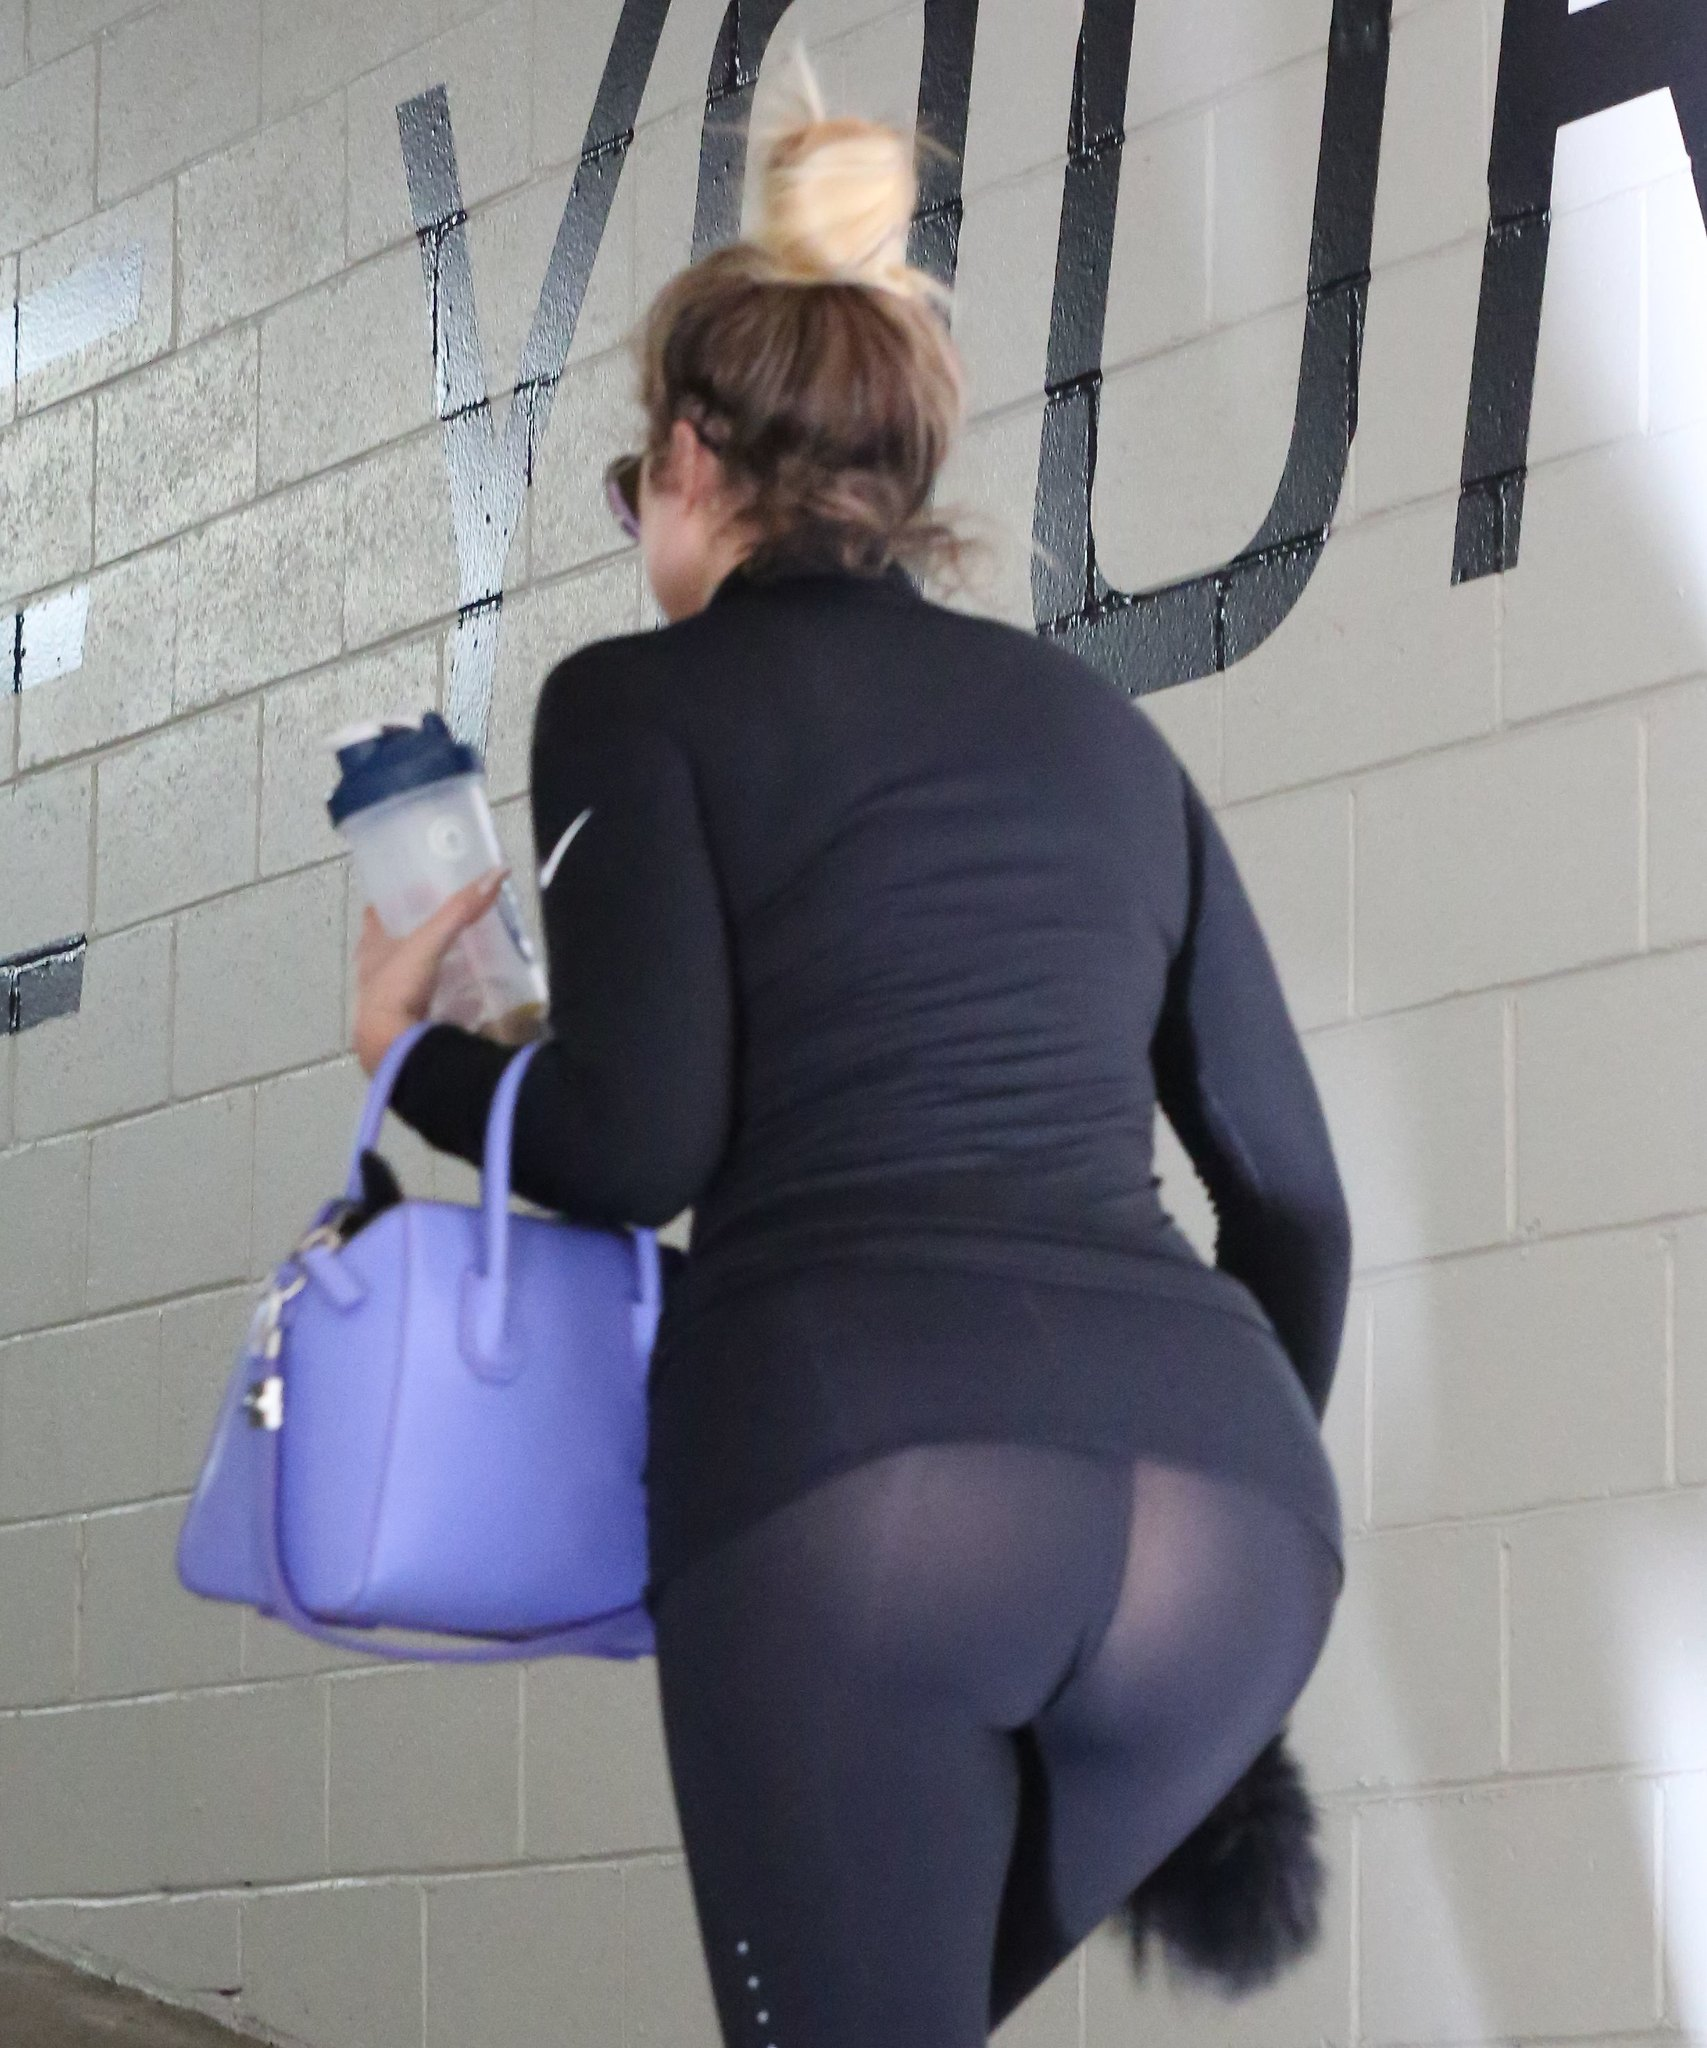 khole kardashian's booty is out again- headed to the gym 3/25/15 hq